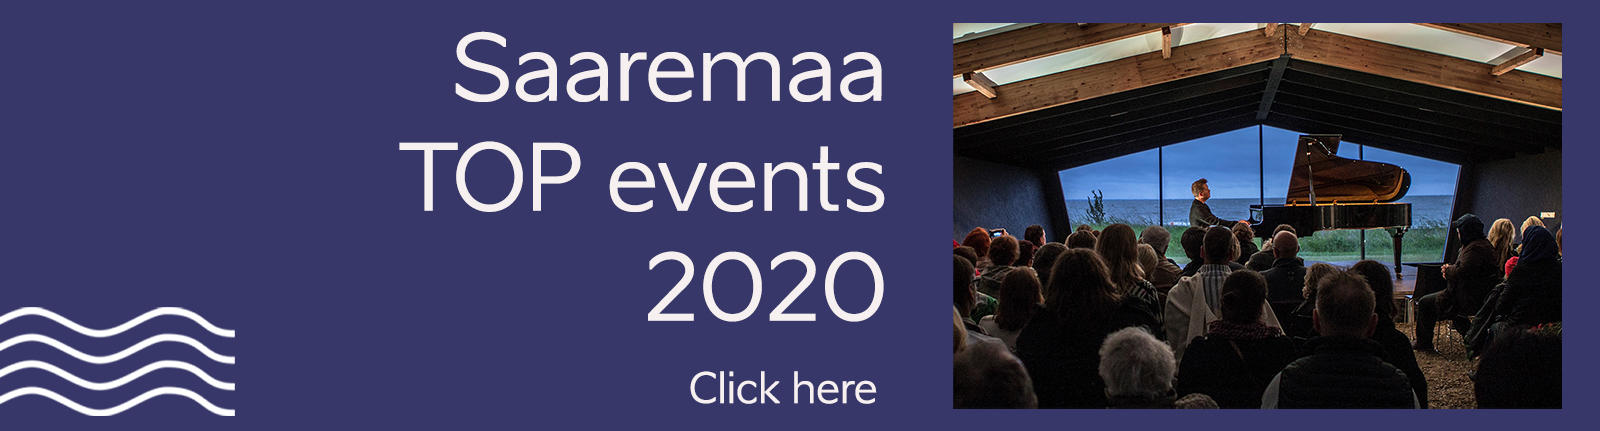 All the top events on Saaremaa are listed at the link on this picture.